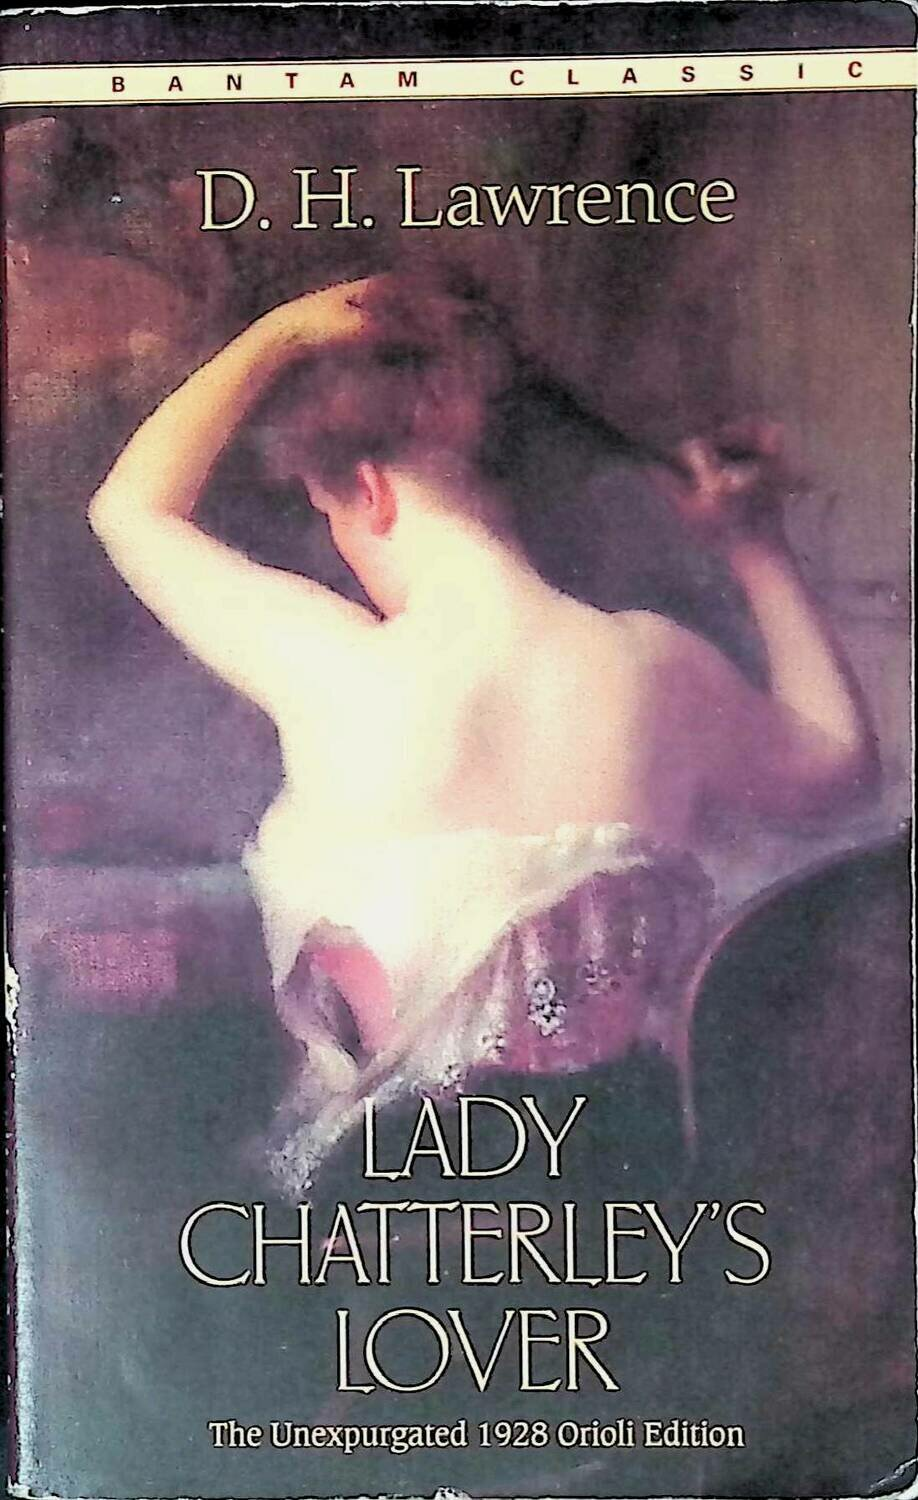 Lady Chatterley's Lover; D.H. Lawrence